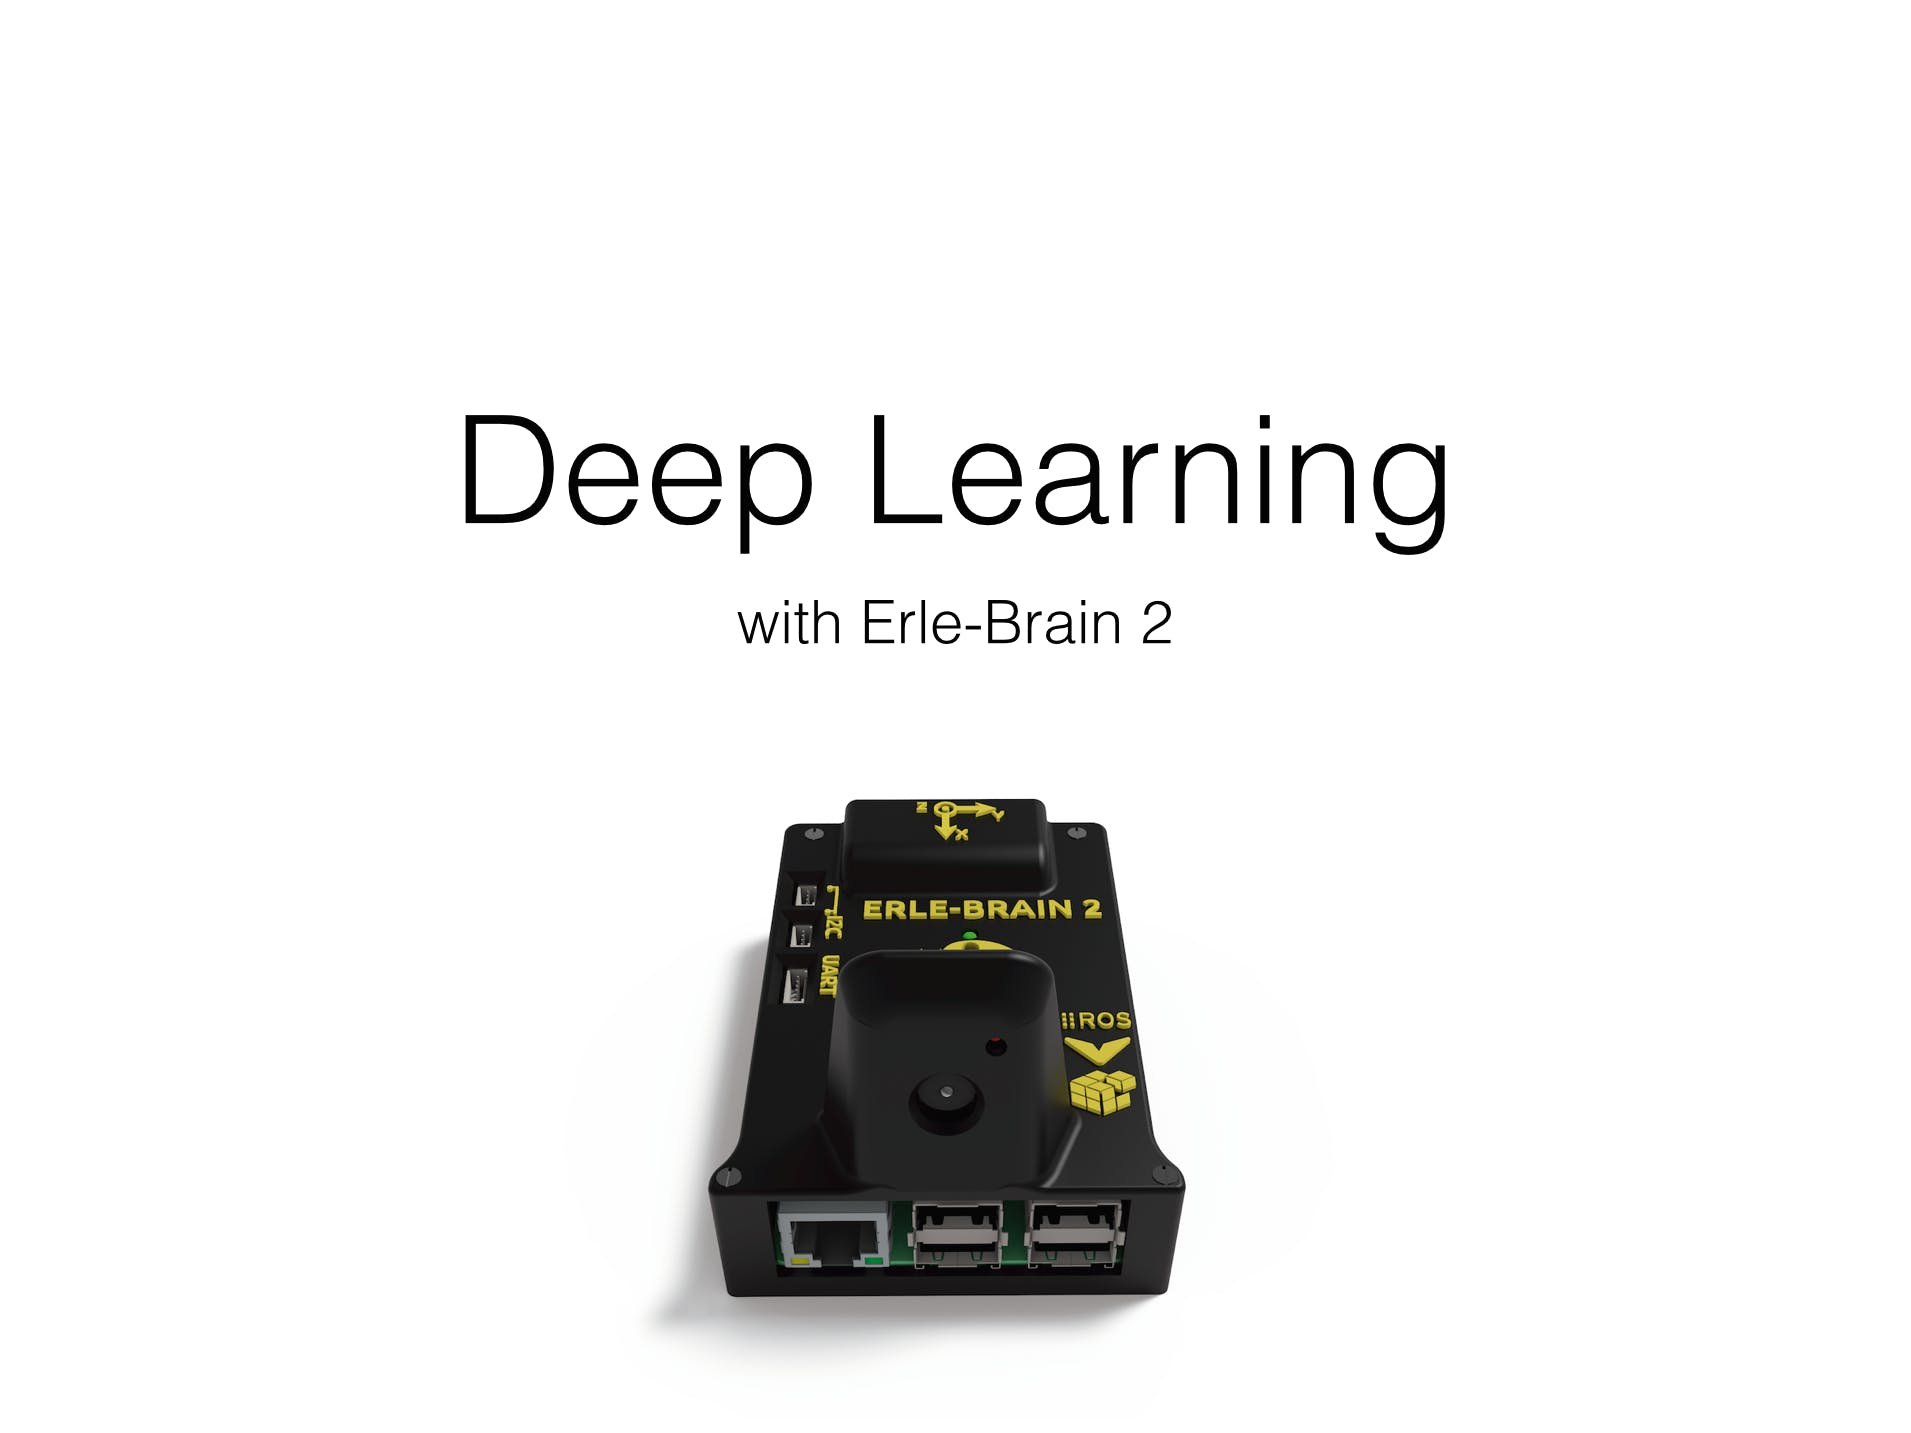 Deep Learning with Erle-Brain 2